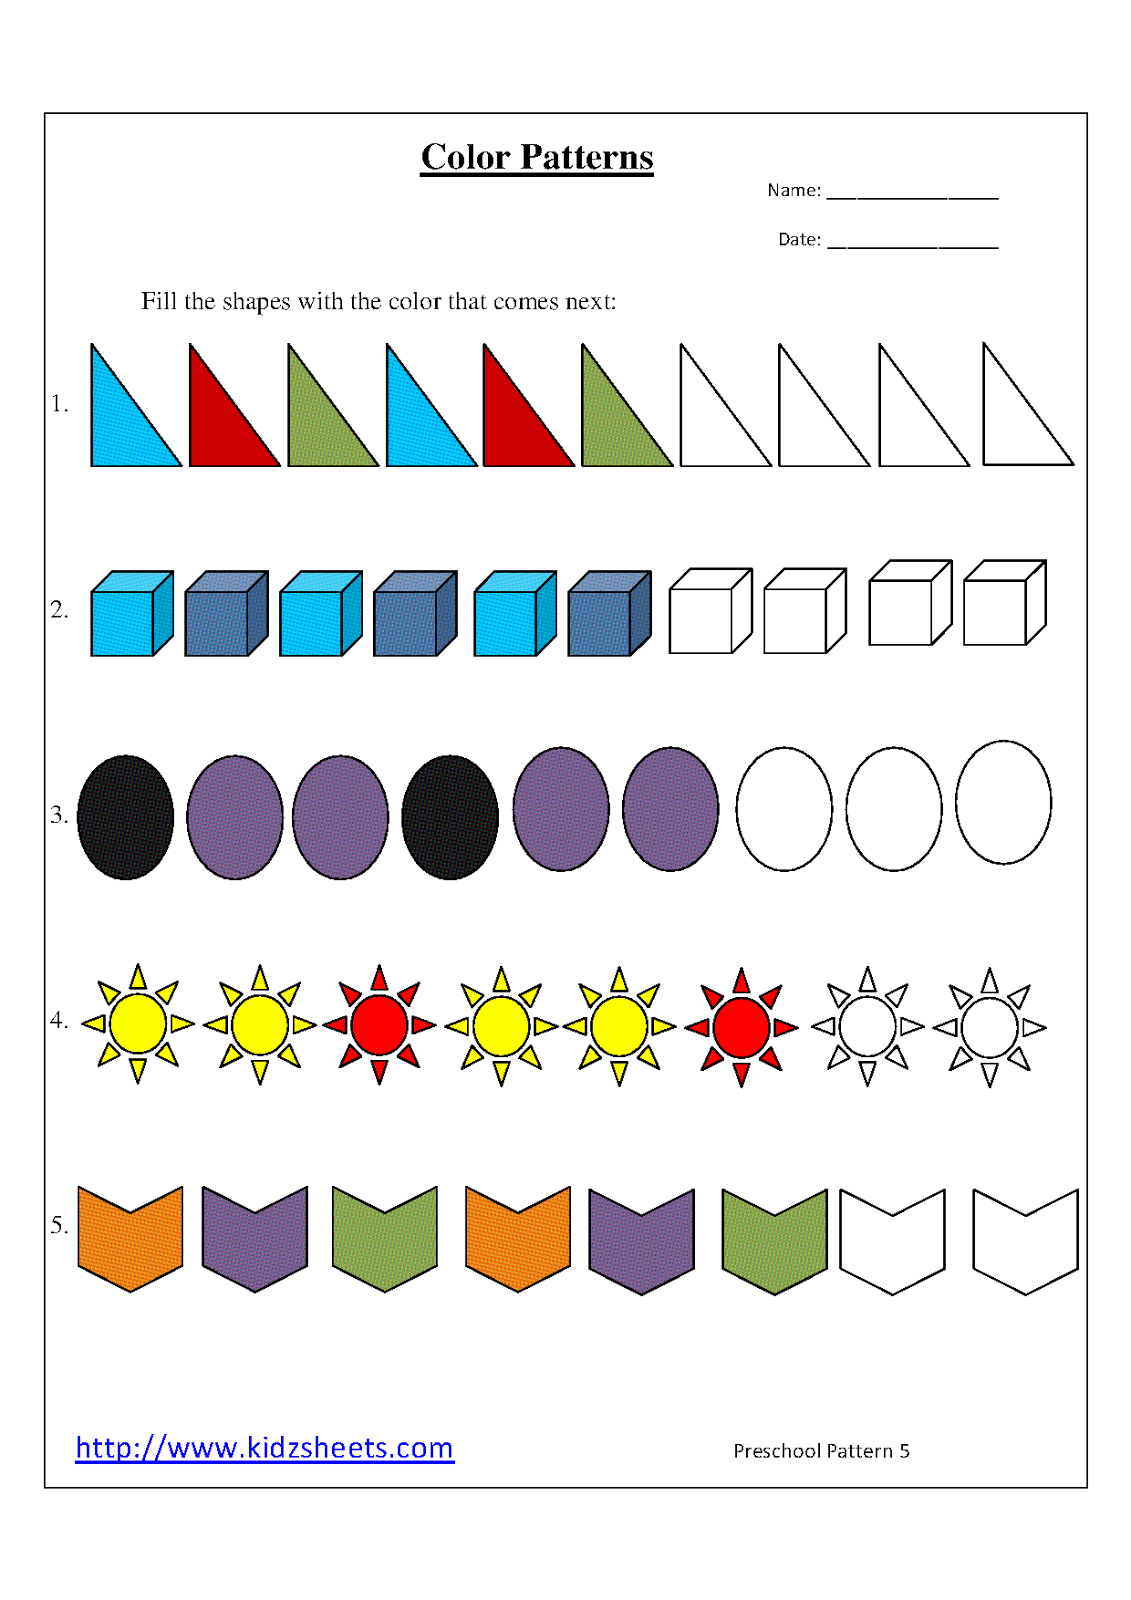 Worksheet Printable Patterns Worksheets kidz worksheets preschool color patterns worksheet5 patterns